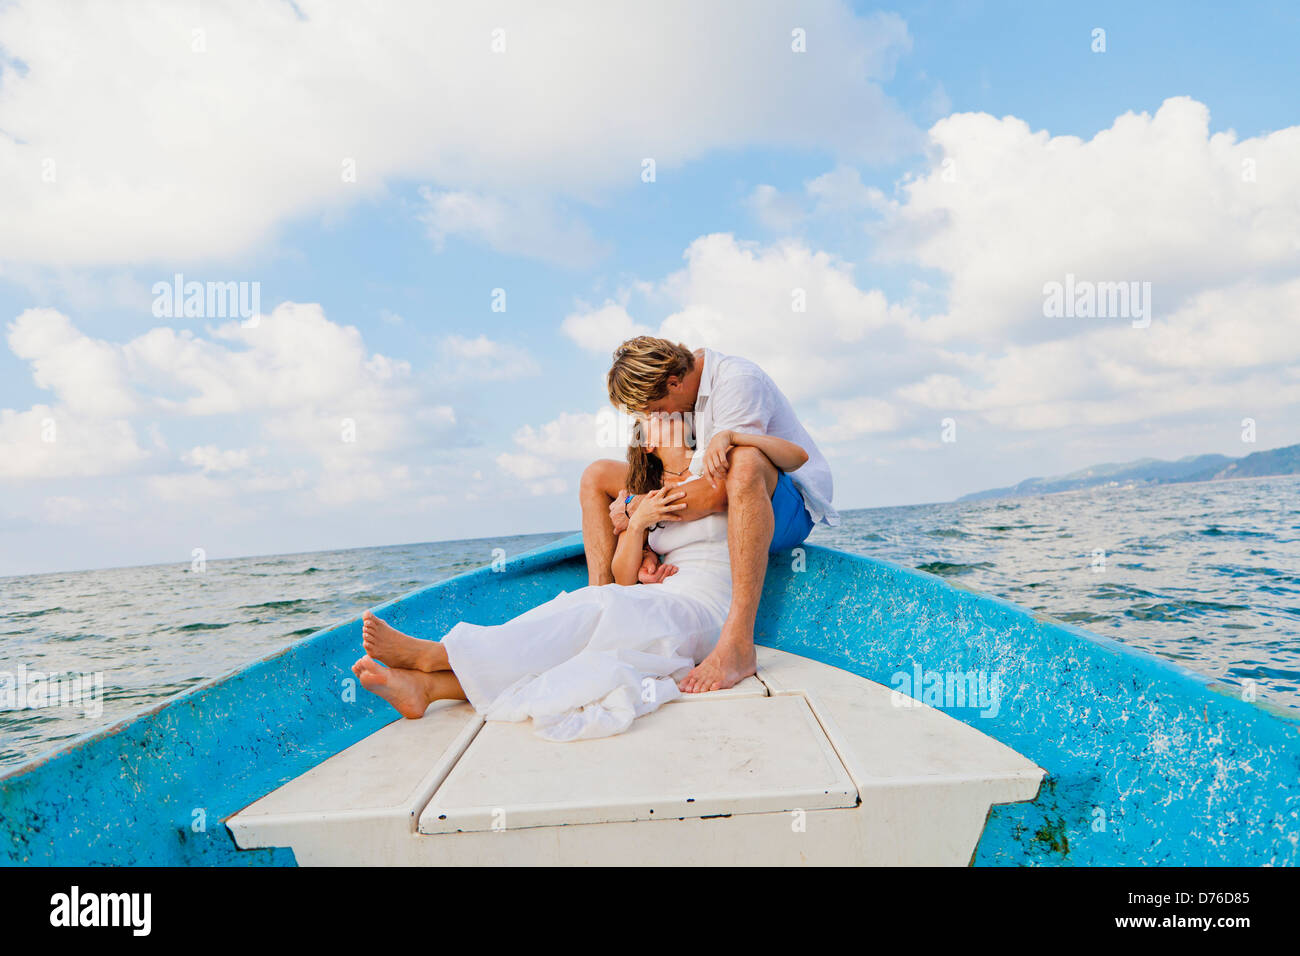 Man and woman embracing in bow of boat Stock Photo